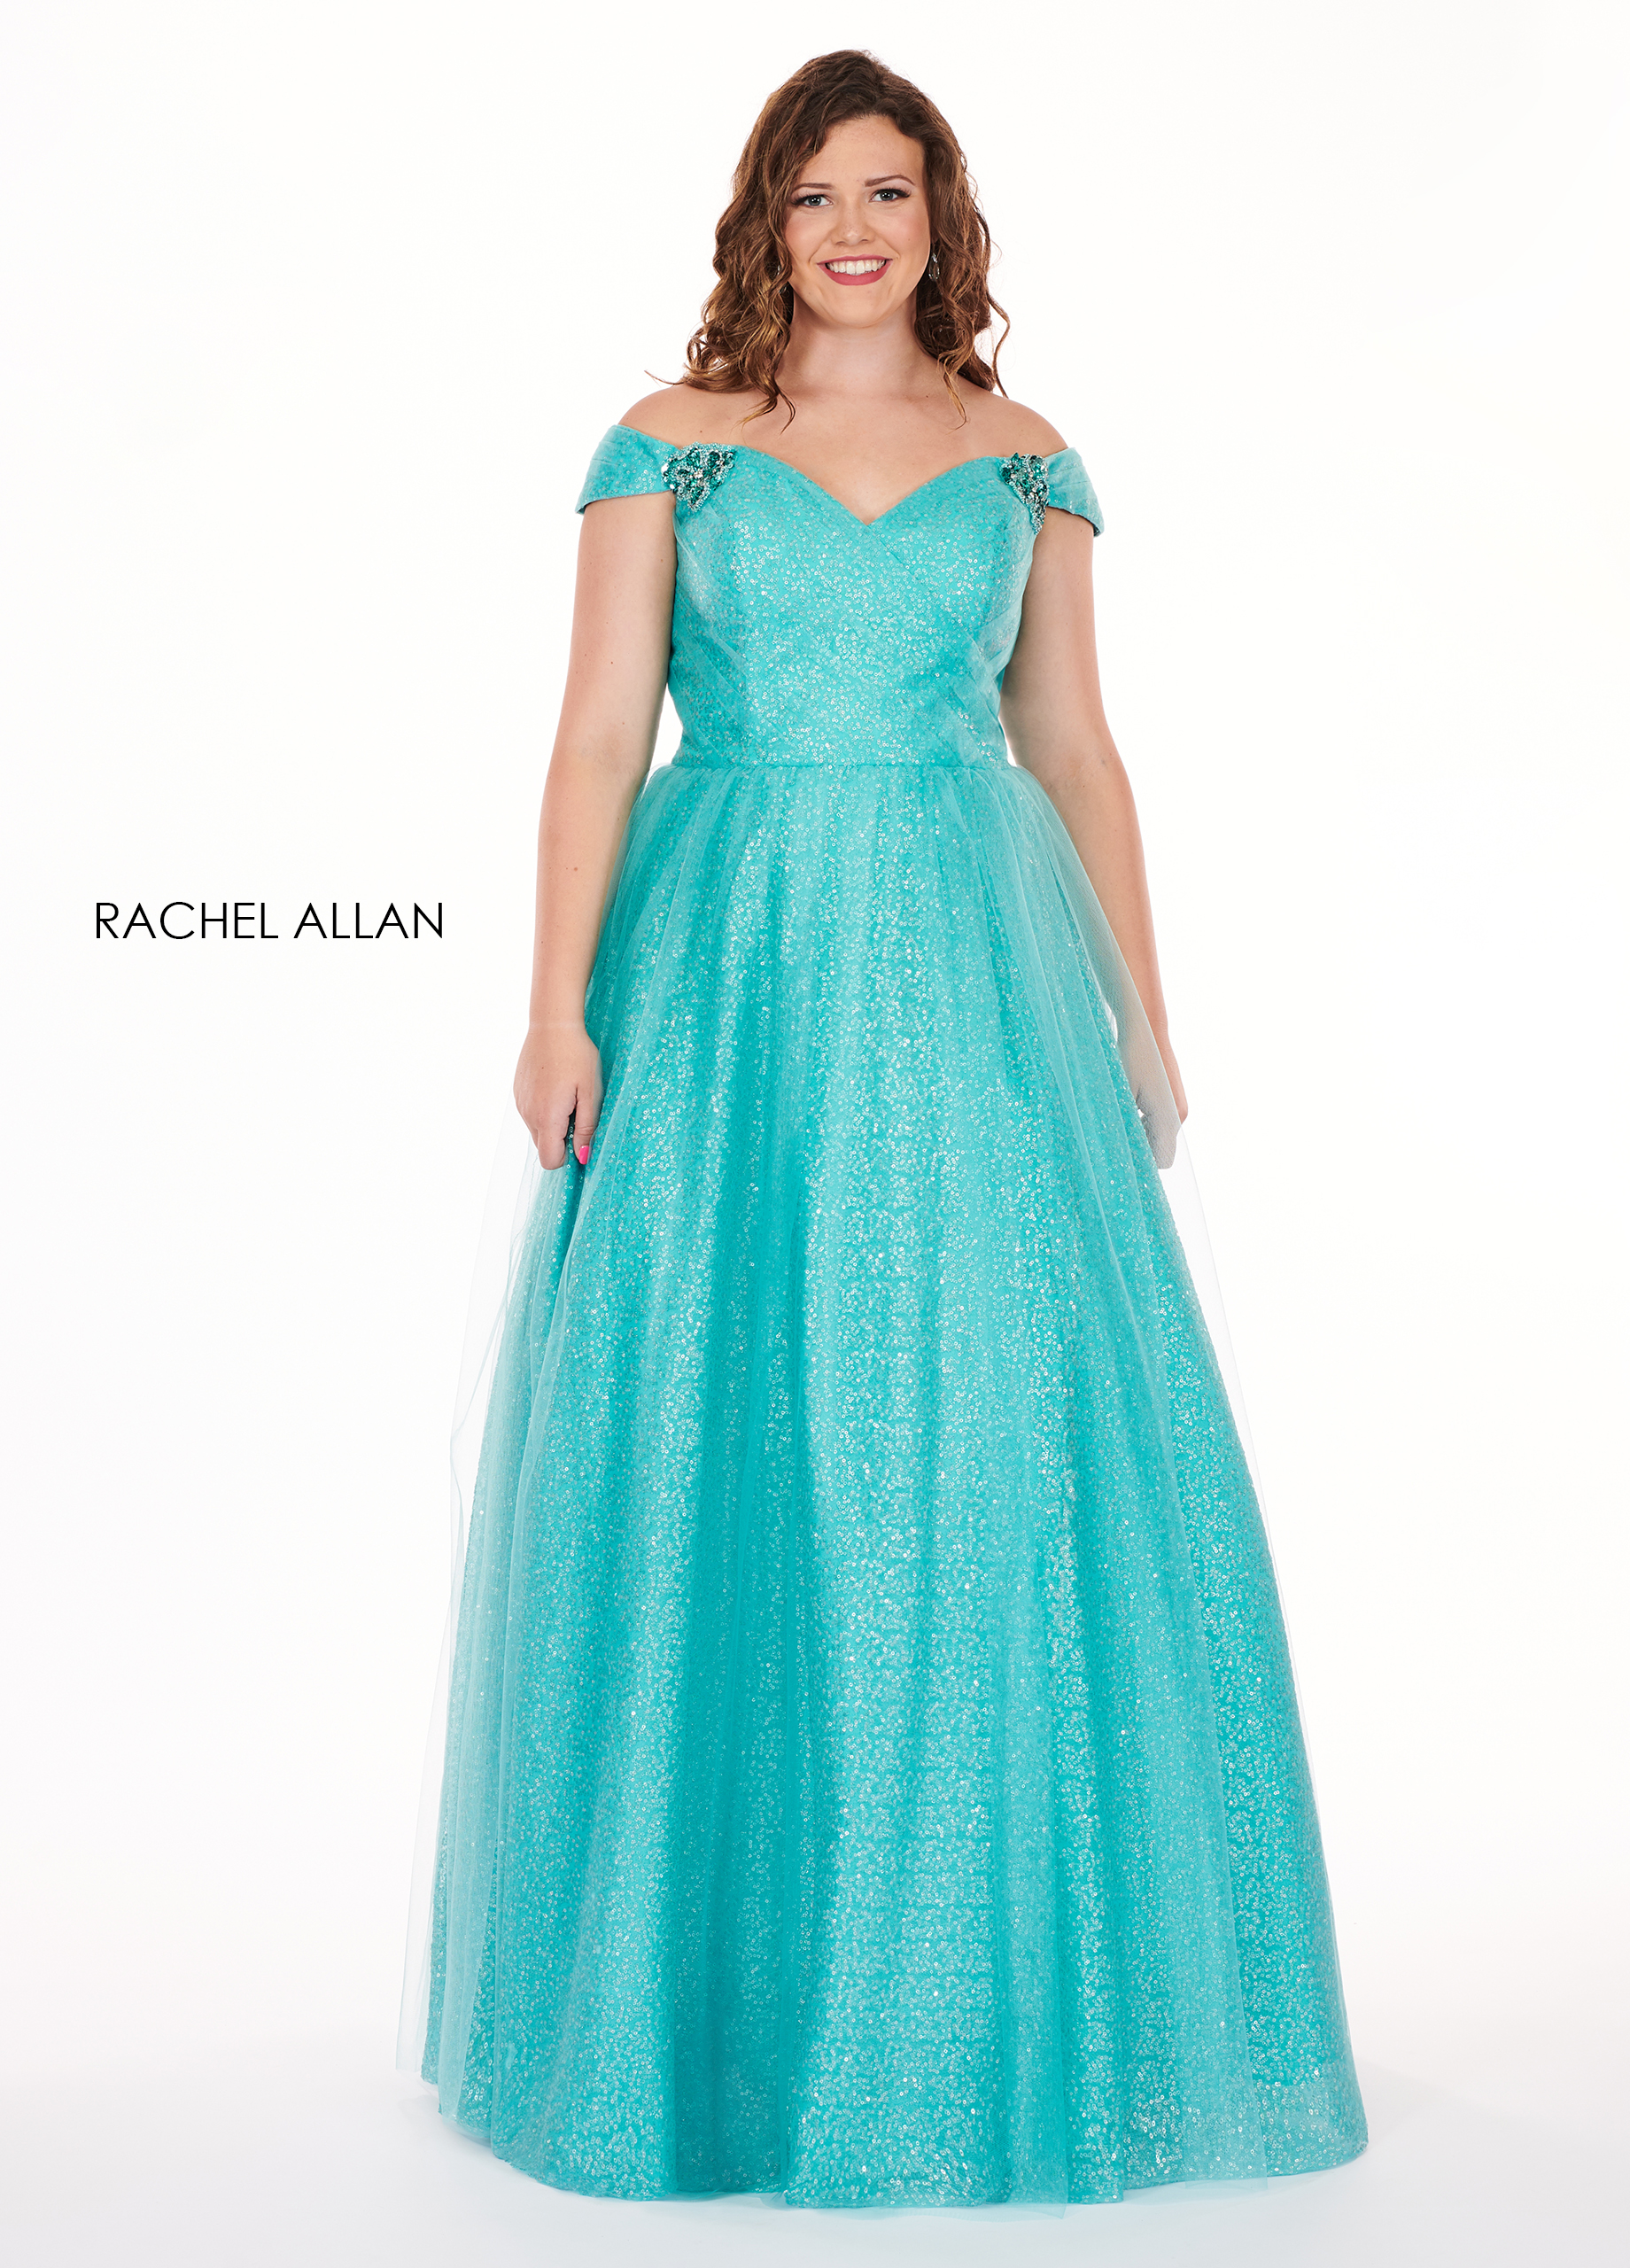 Off The Shoulder Ball Gowns Plus Size Dresses in Aqua Color